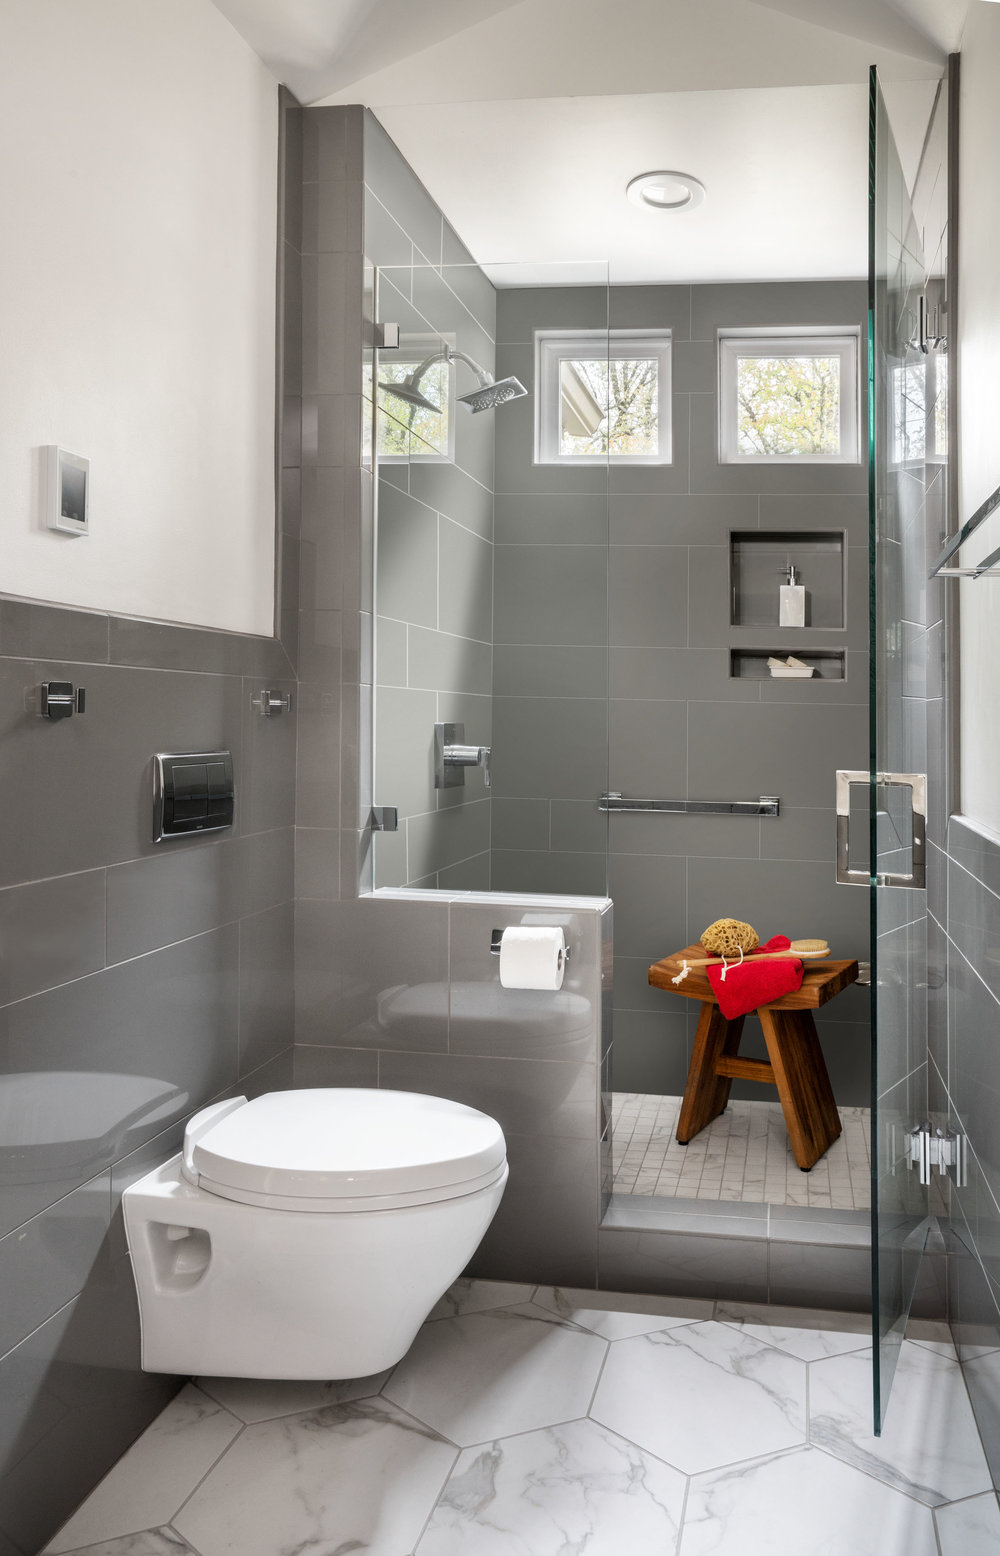 The wall mounted toilet creates extra space to access the shower.